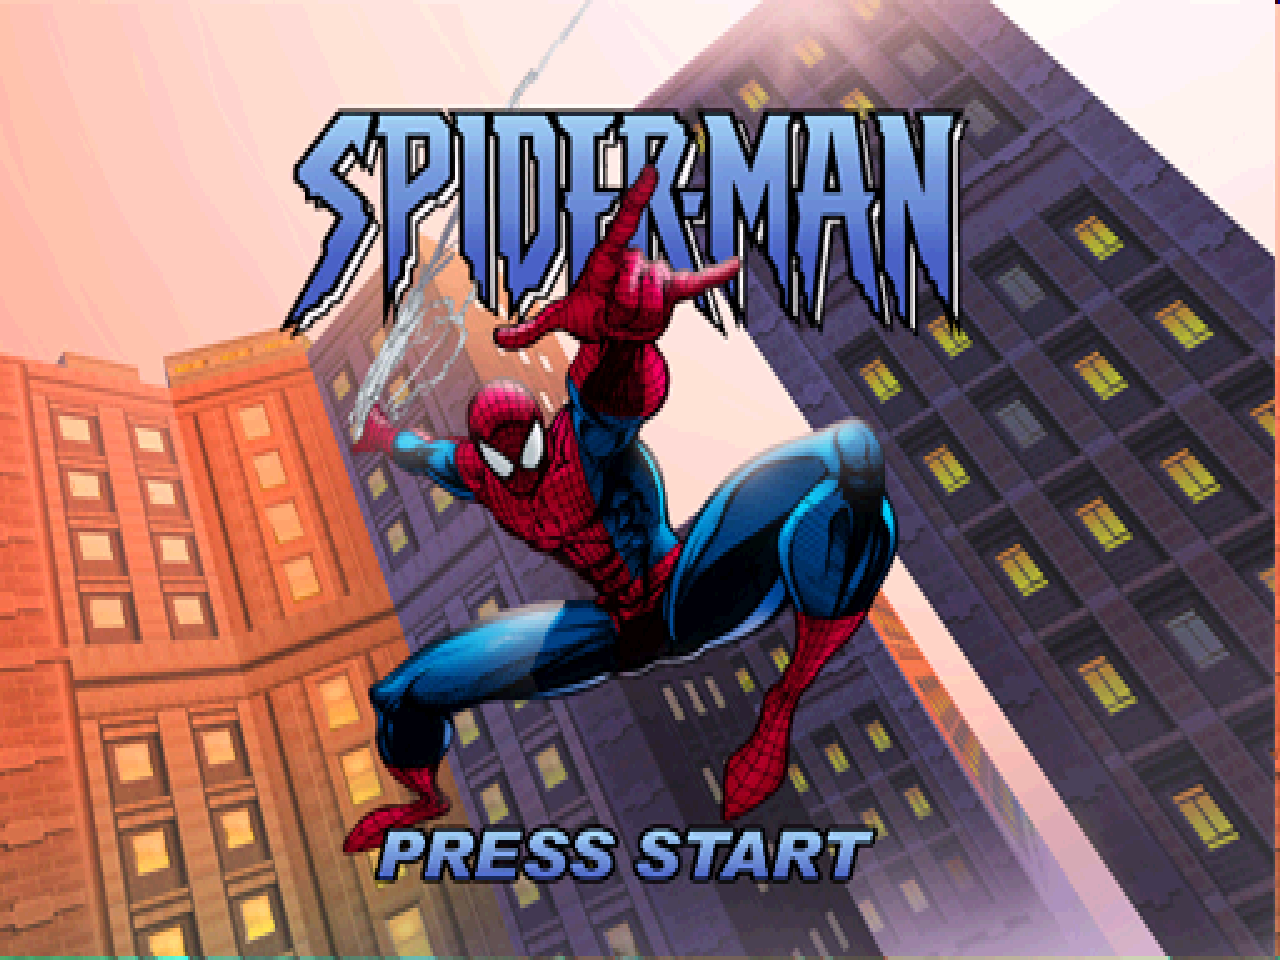 https://s3.eu-west-3.amazonaws.com/games.anthony-dessalles.com/Spider-Man PS1 2020 - Screenshots/Spider-Man-201125-182610.png